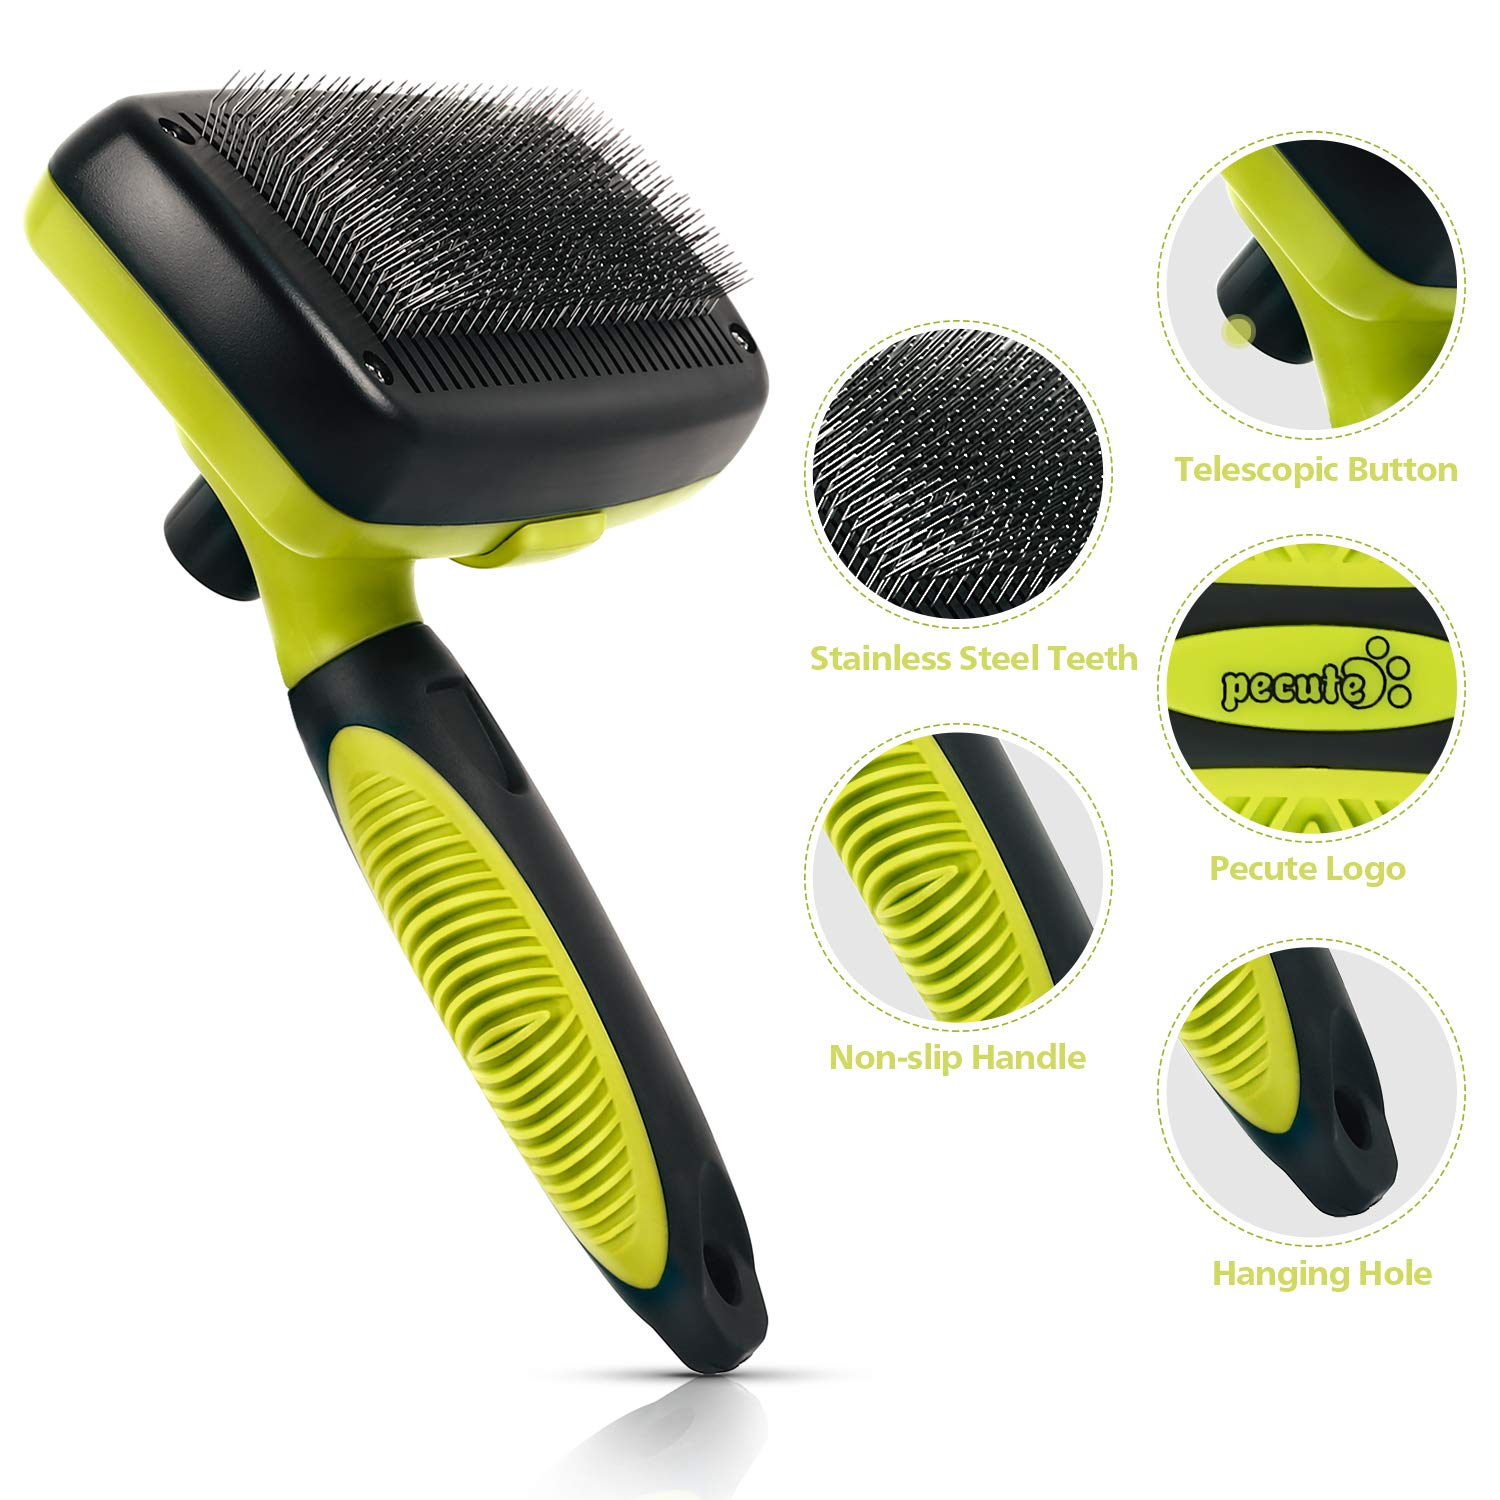 Pecute Grooming Slicker Brush Self Cleaning Dog & Cat Brush for Pet\'s Long & Short Hair Shedding - Press a Button to Remove Tangles and Loose Fur